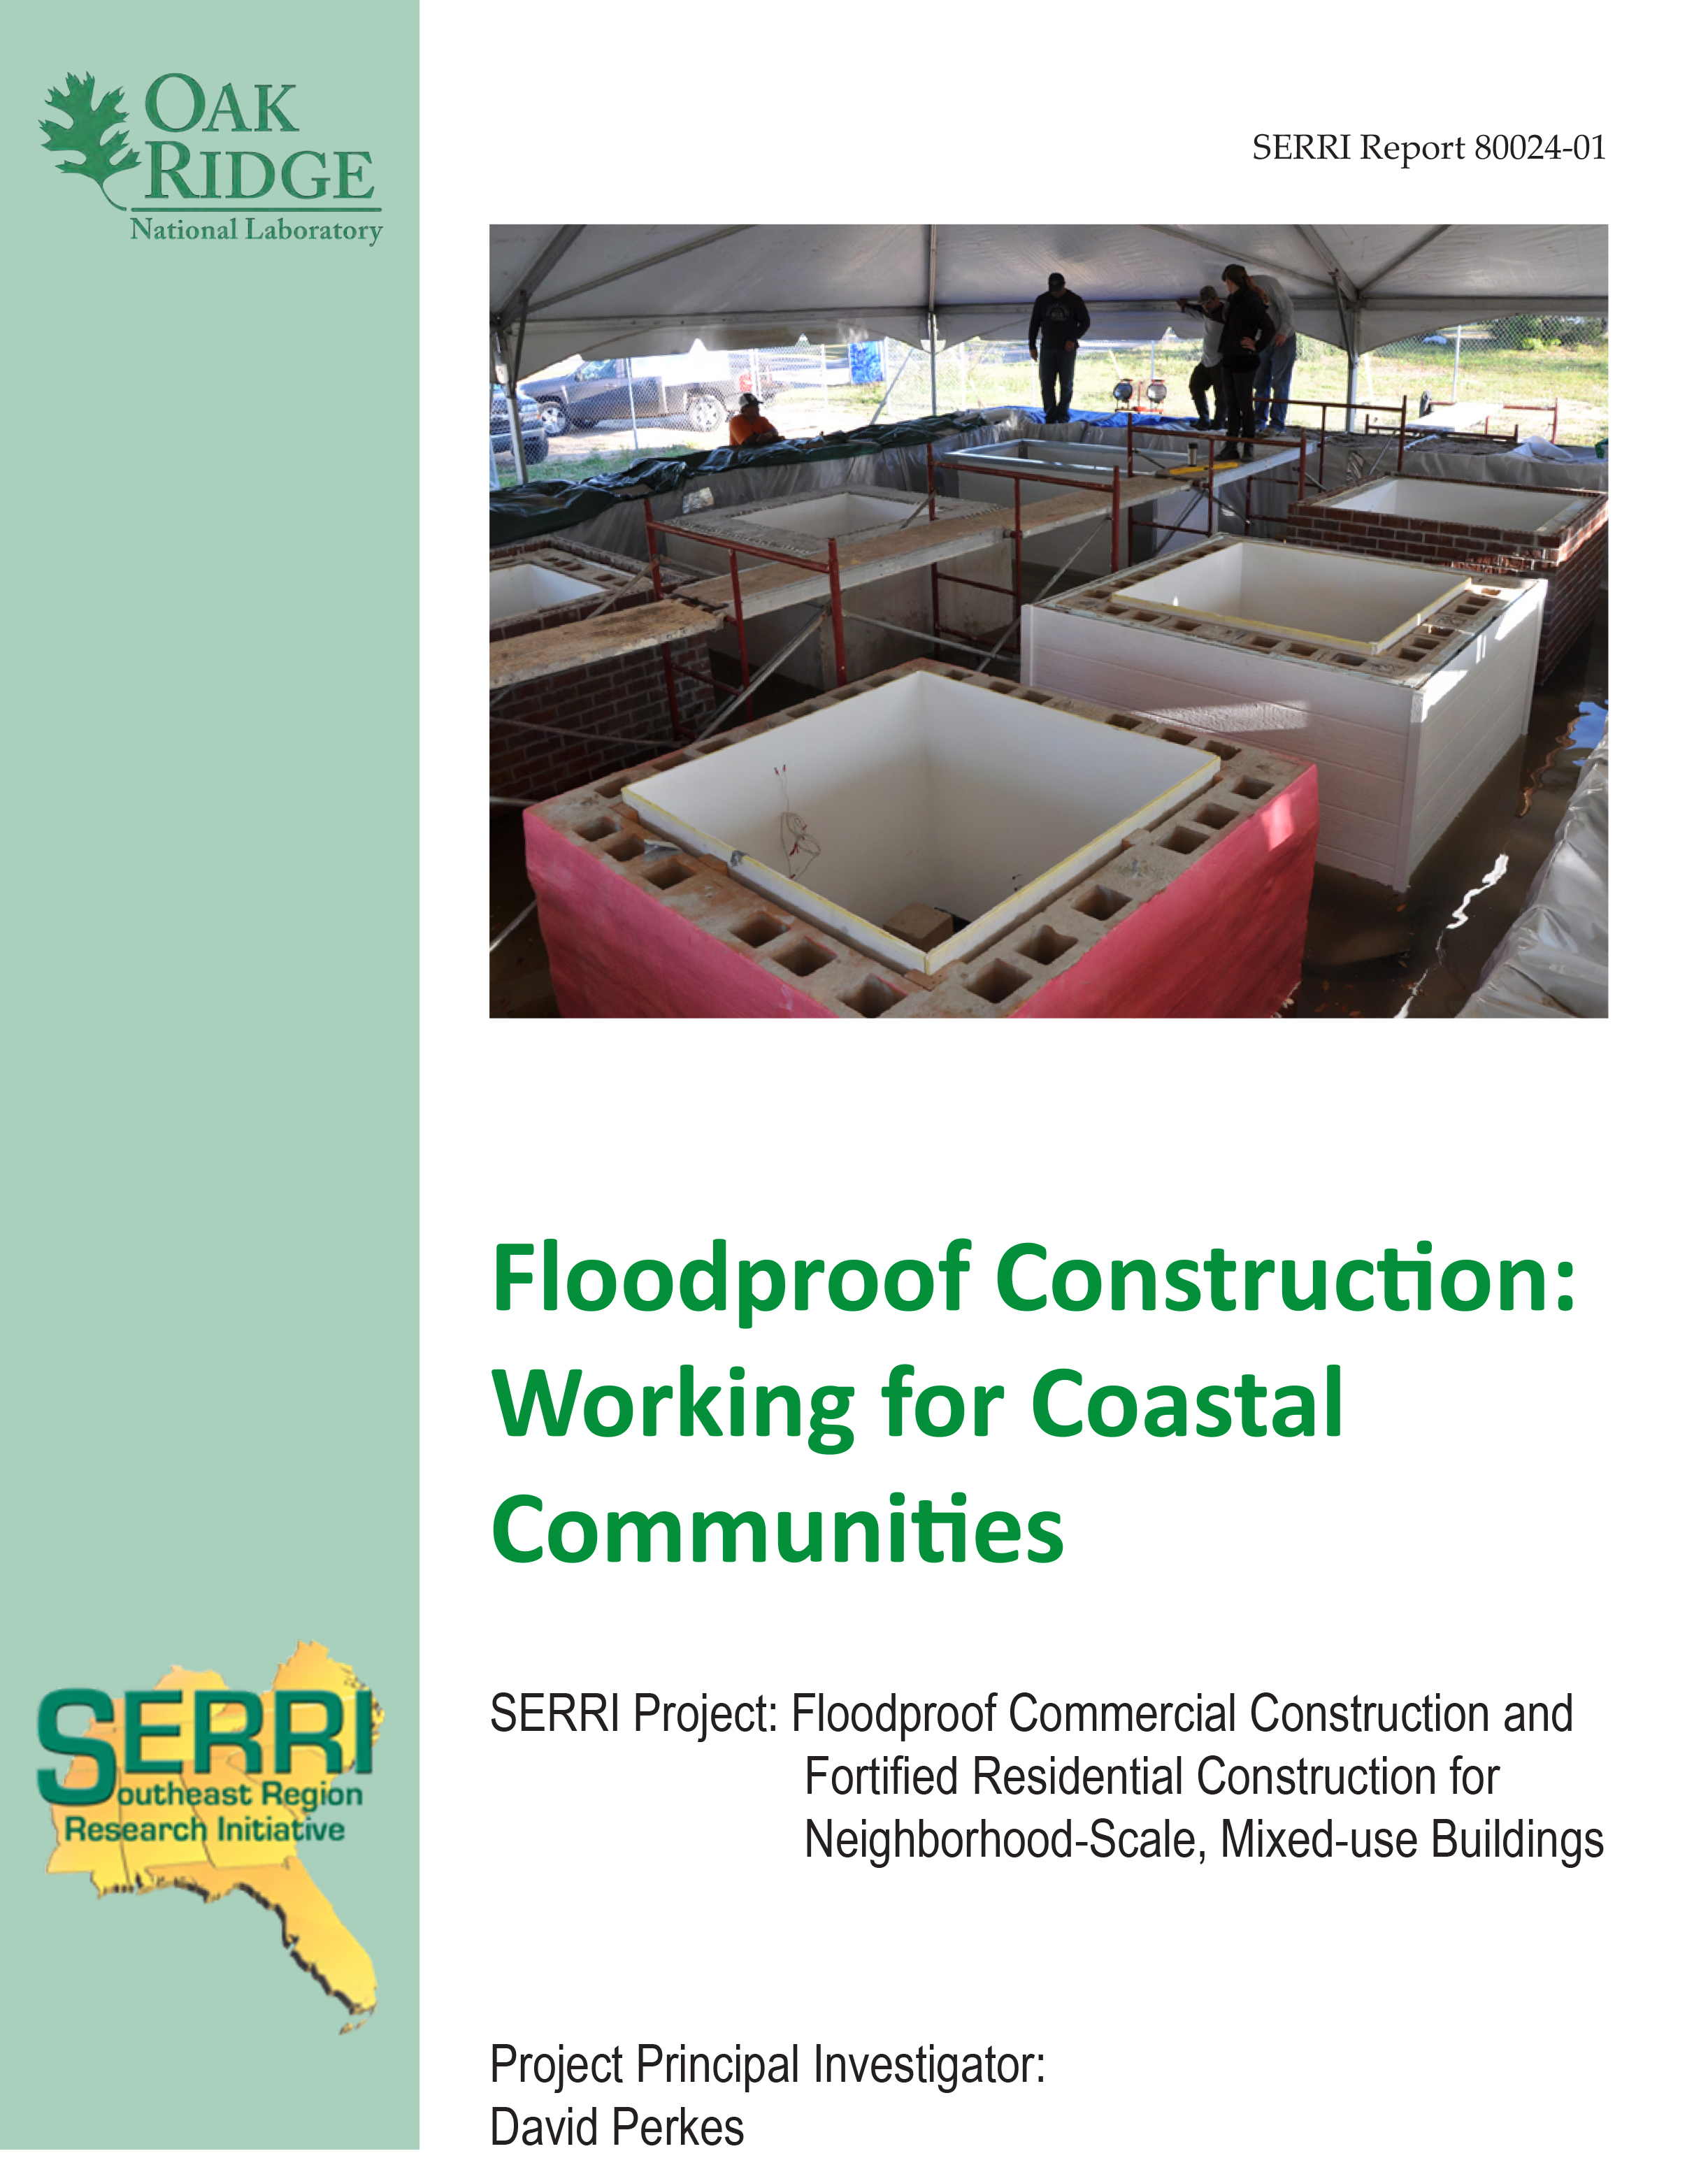 To download a copy of the Flood Proof Construction Guide click on the image.